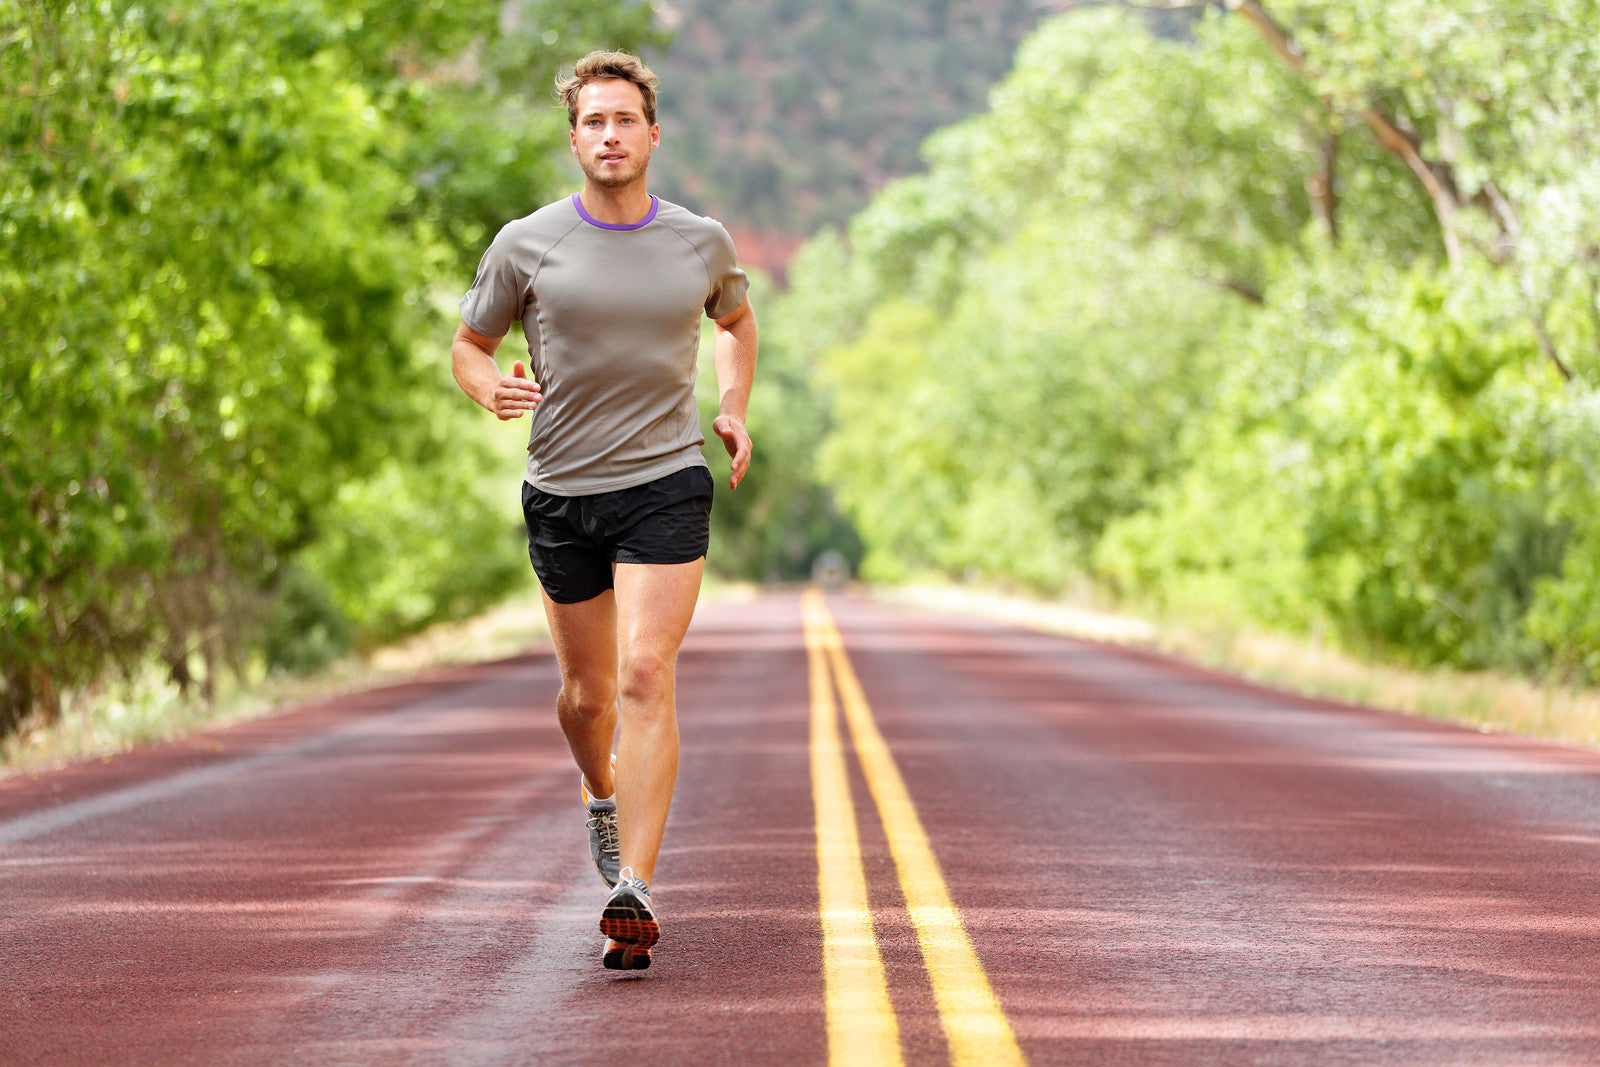 Best Cardio Workouts for Building Muscle Mass